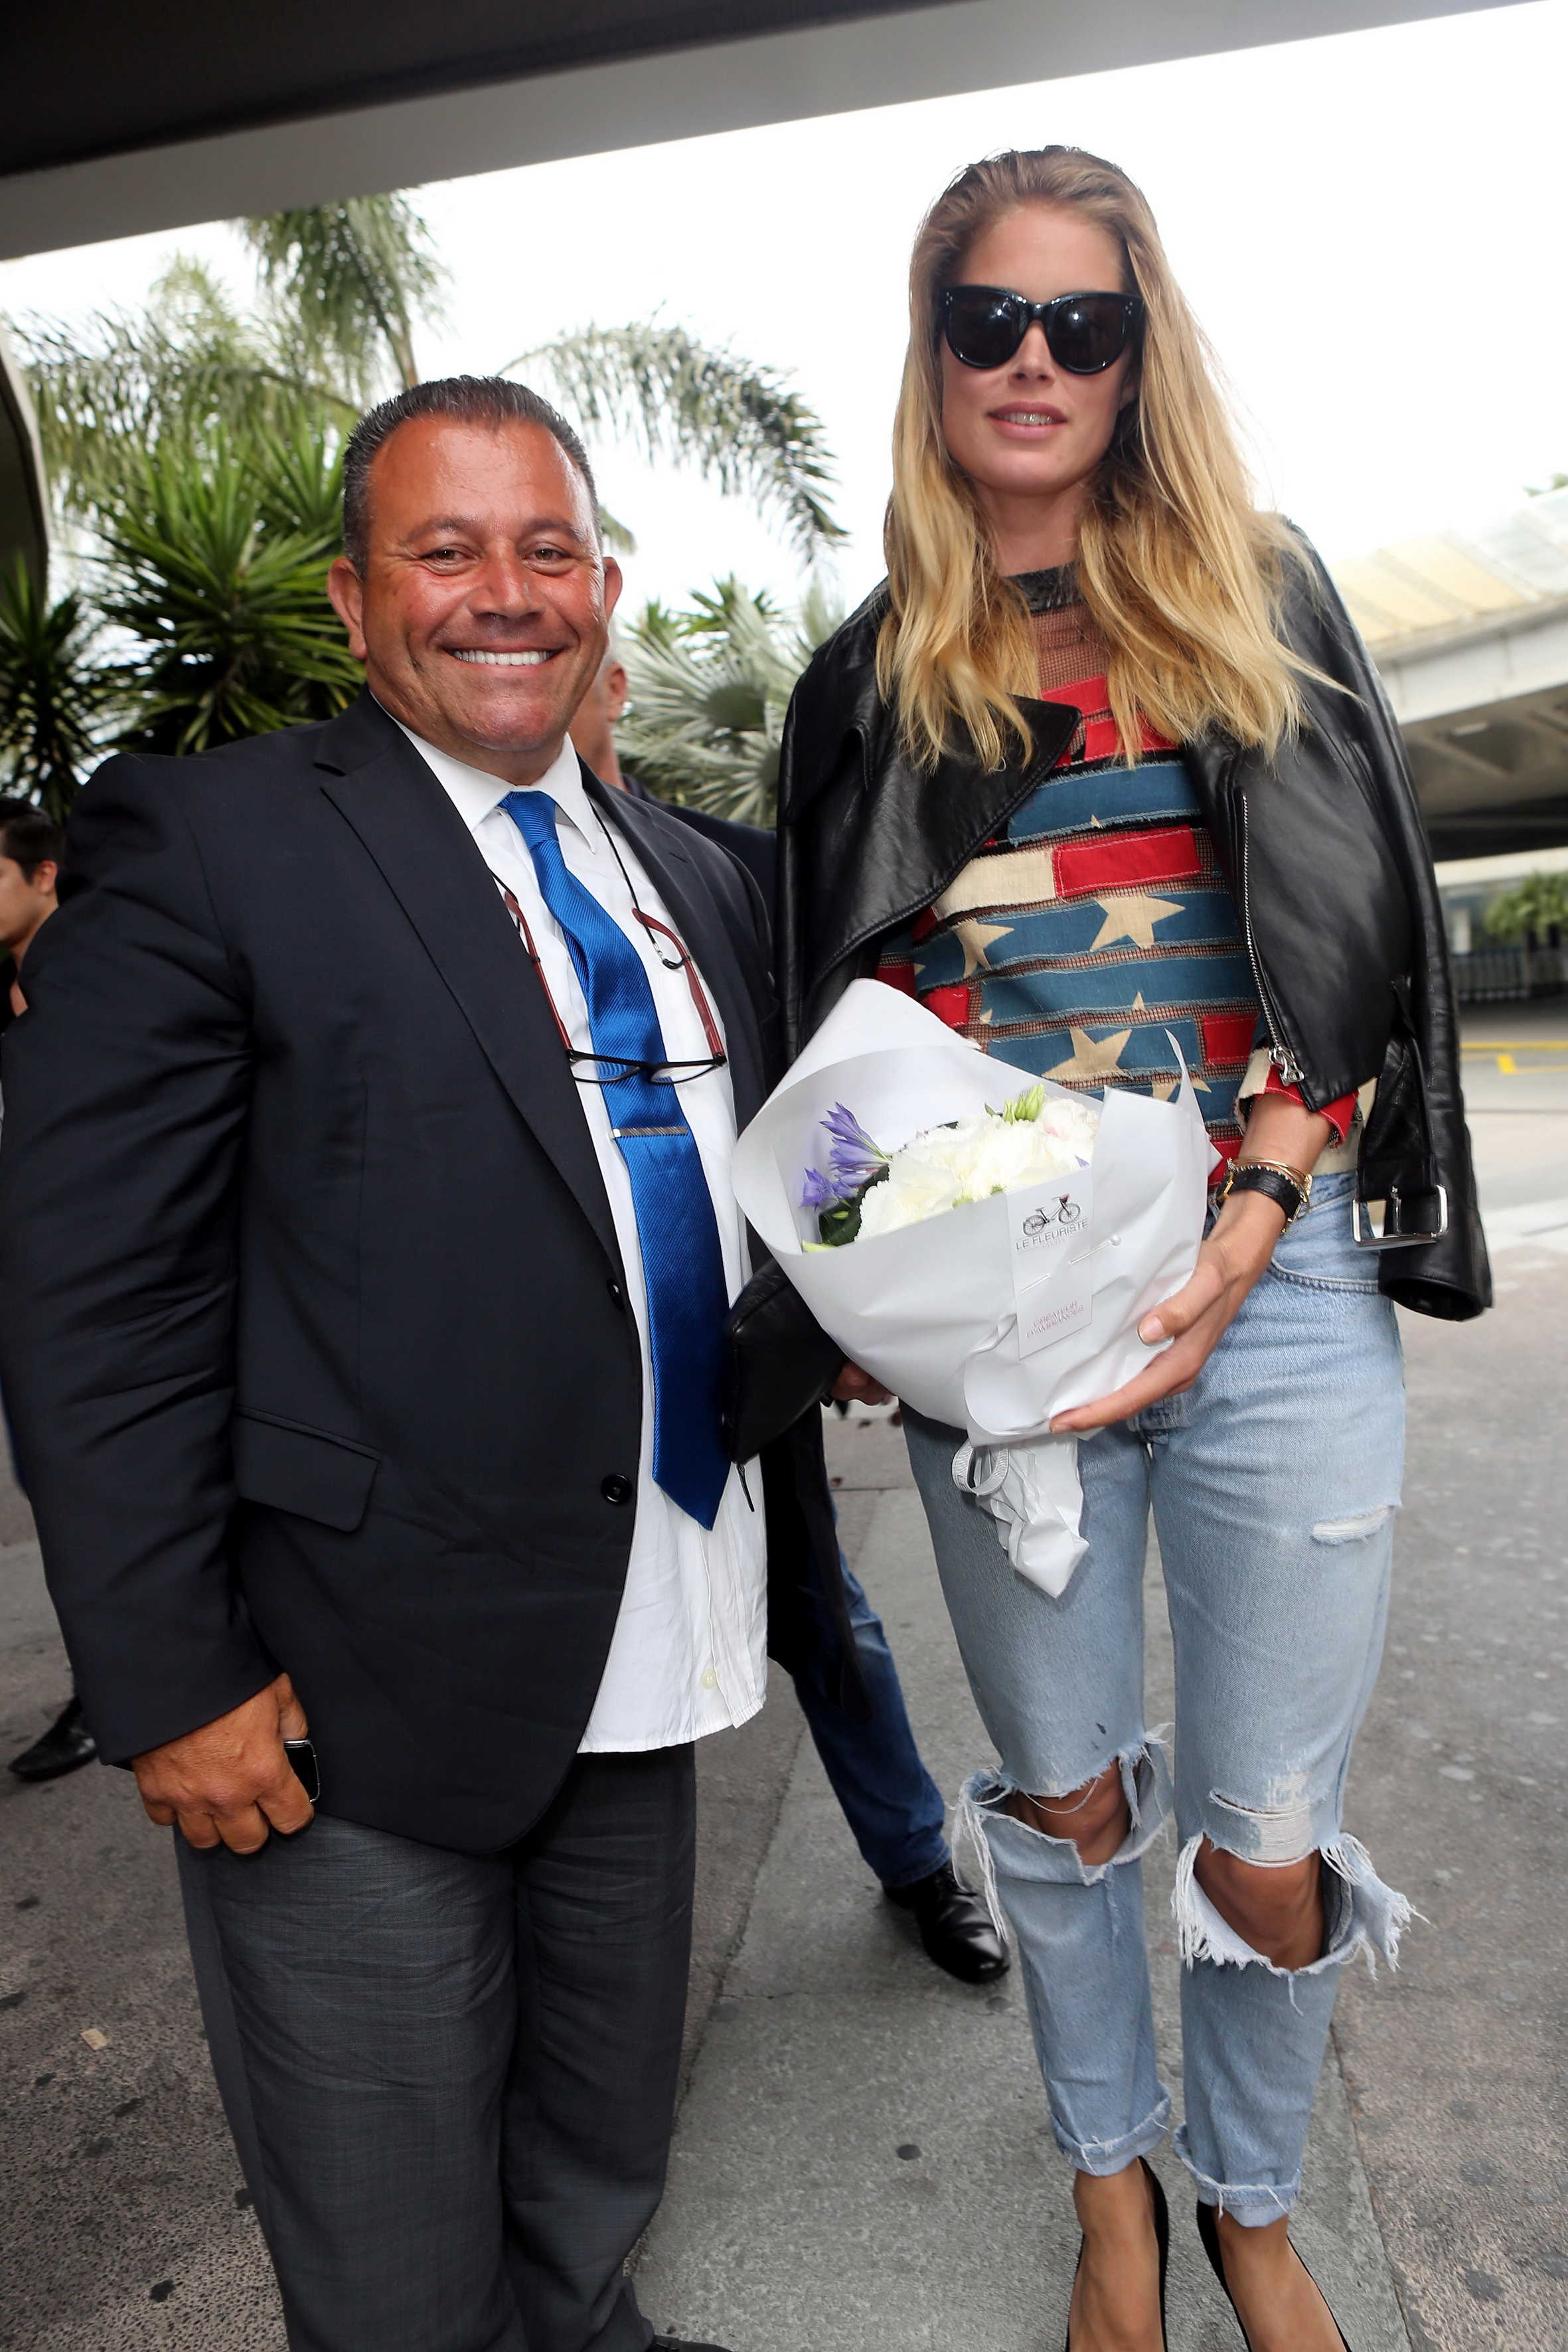 Doutzen Kroes arriving at the airport in Nice